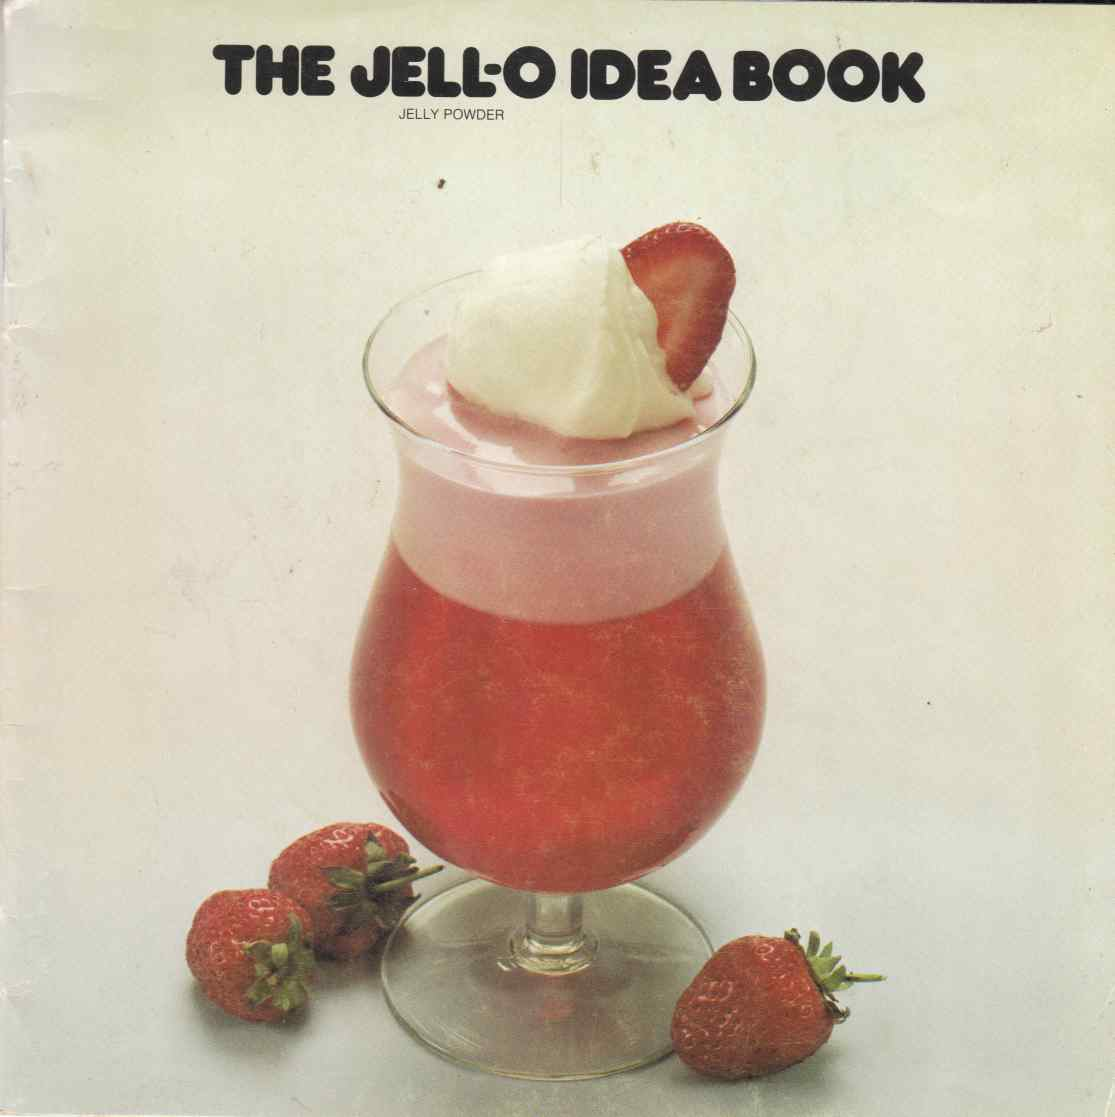 Image for The Jell-O Idea Book